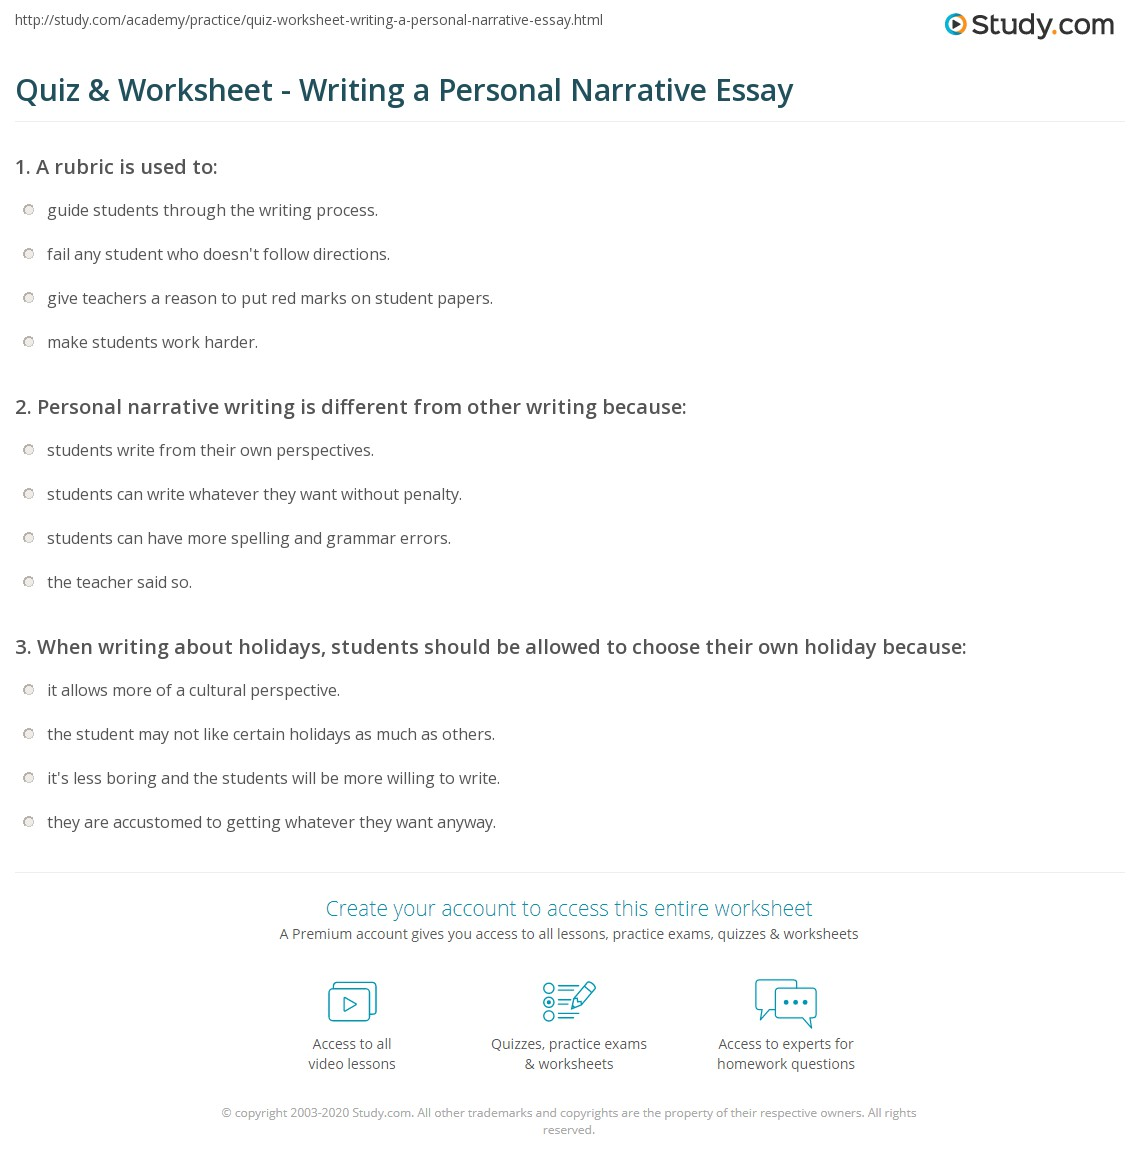 write personal essays Not sure where to share a personal essay here's your list of sites to target.